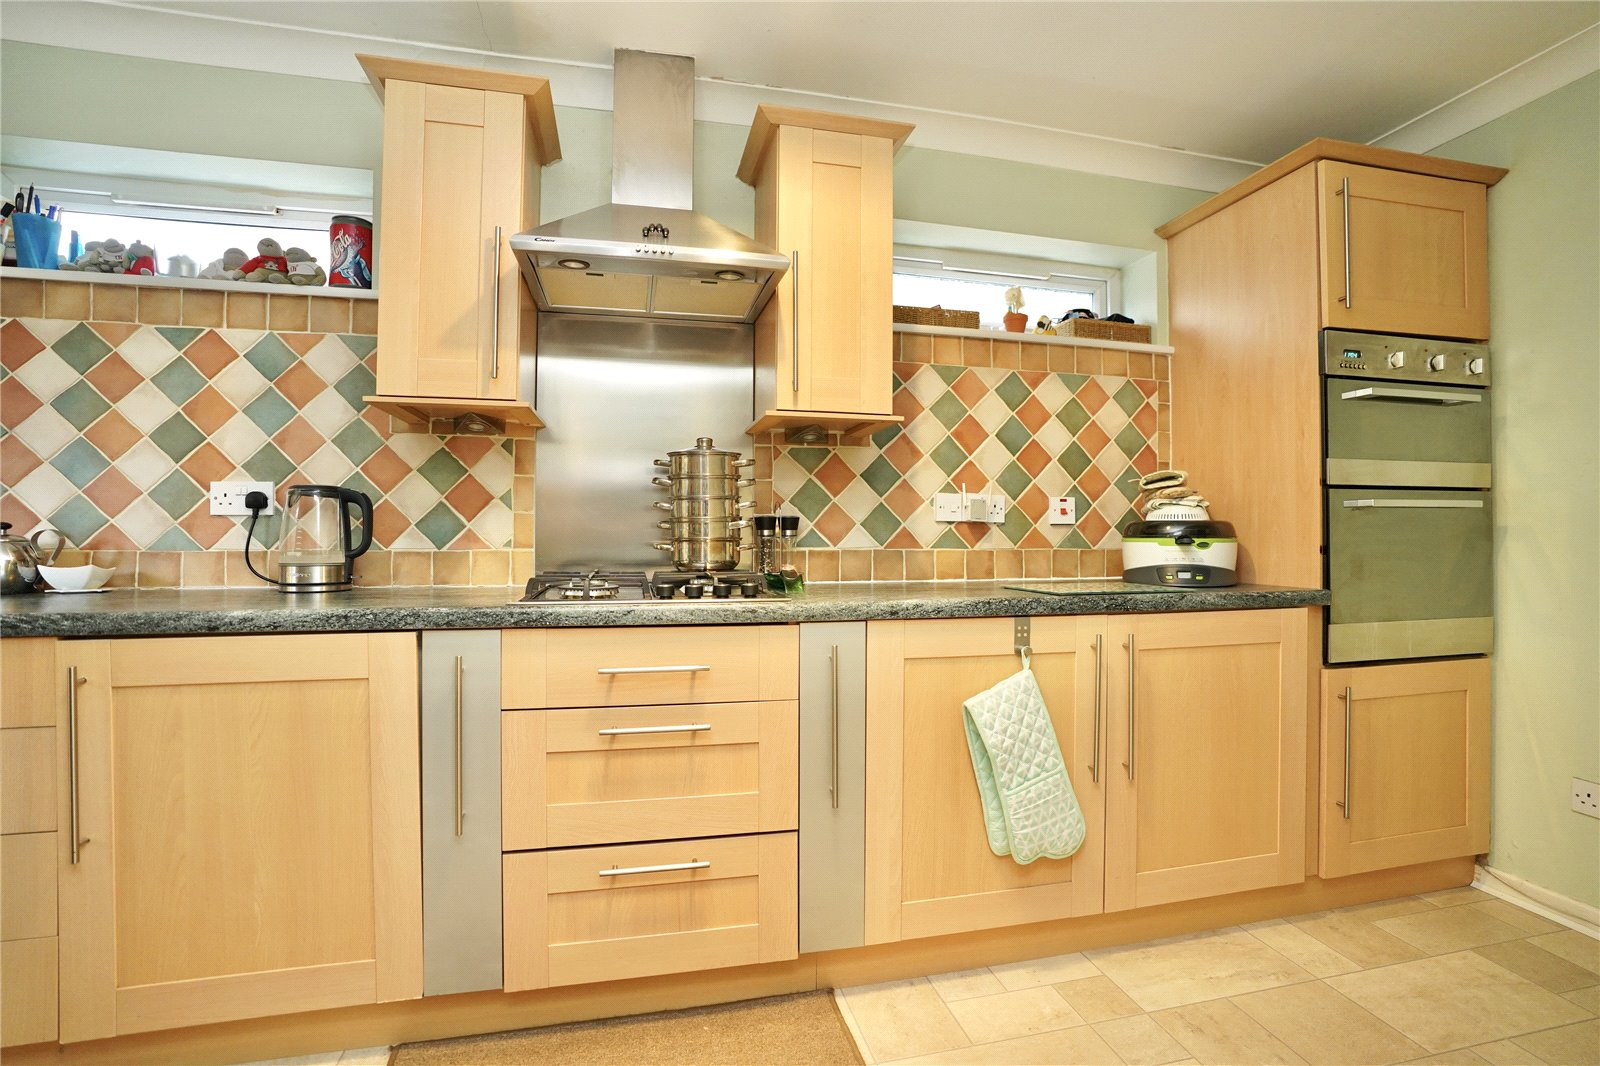 4 bed house for sale in Eaton Socon, PE19 8HU  - Property Image 6